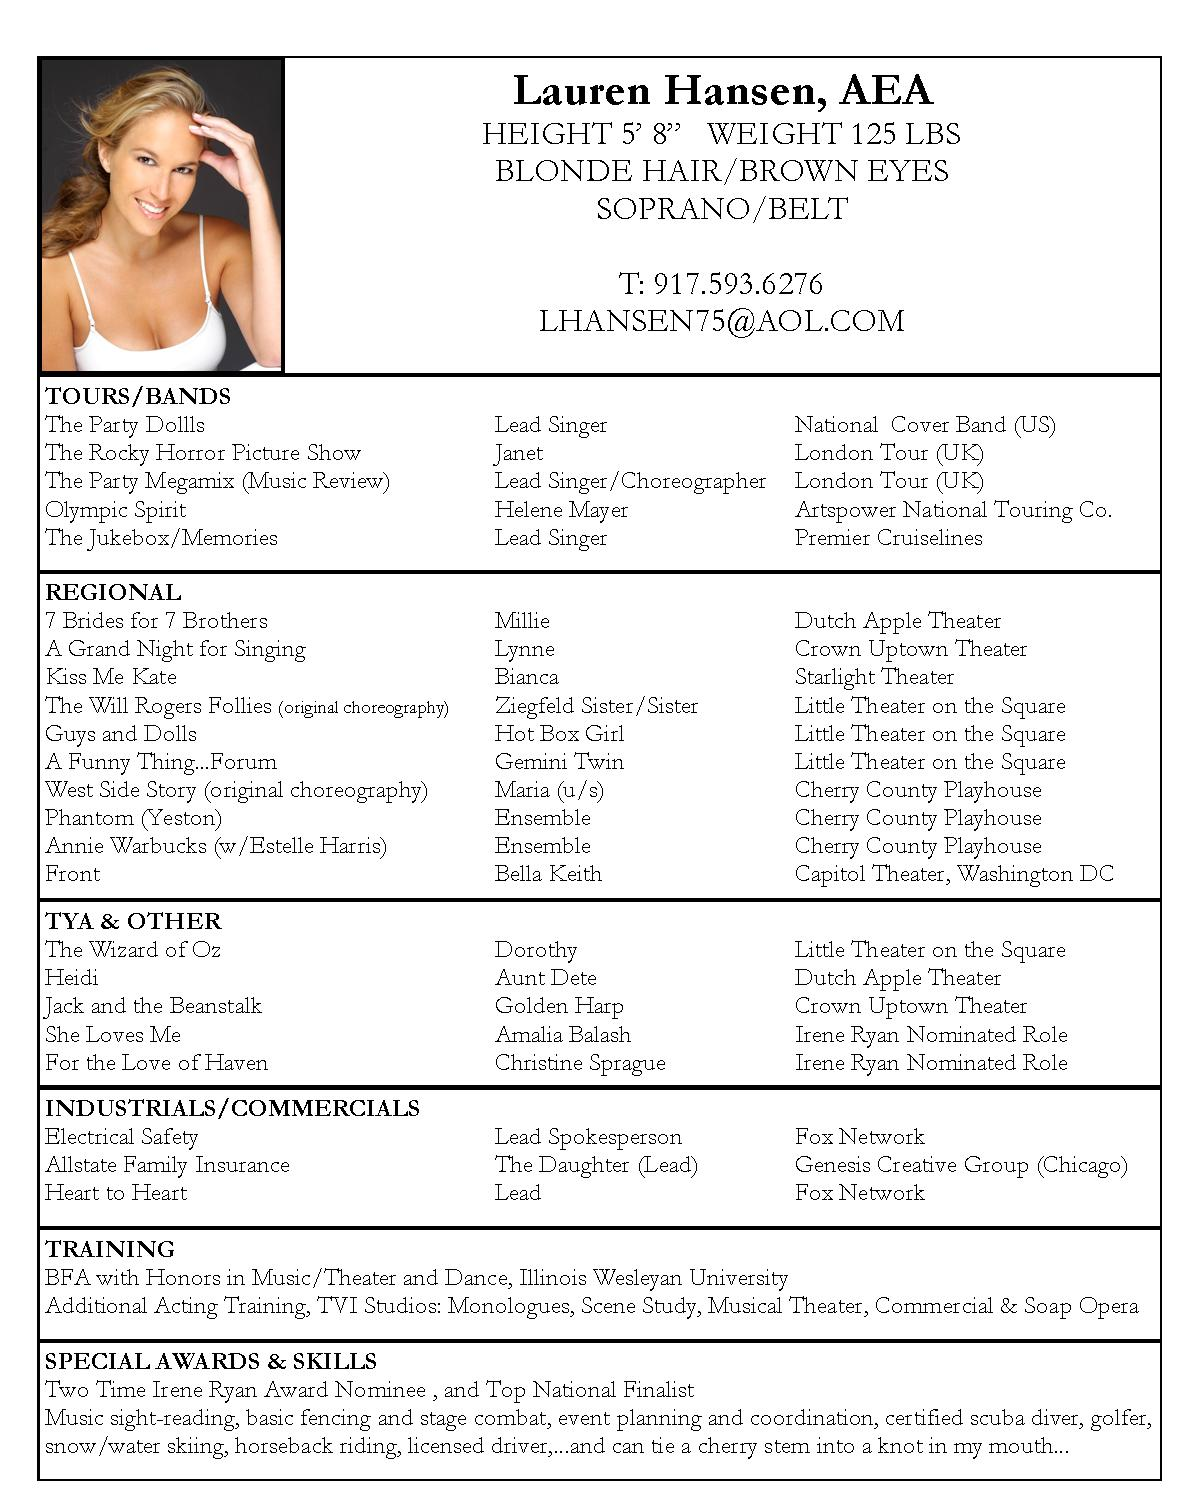 Opposenewapstandardsus  Pleasant Resume For Actors Resume For Acting Actors Acting Resume Template  With Glamorous Acting Cv  Beginner Acting Resume Example For Inexperienced  With Cute Government Resume Format Also Is Resume Help Free In Addition What Is A Good Summary For A Resume And Hotel Sales Manager Resume As Well As Sales Representative Resume Sample Additionally Secretary Resume Objective From Kelseymarieco With Opposenewapstandardsus  Glamorous Resume For Actors Resume For Acting Actors Acting Resume Template  With Cute Acting Cv  Beginner Acting Resume Example For Inexperienced  And Pleasant Government Resume Format Also Is Resume Help Free In Addition What Is A Good Summary For A Resume From Kelseymarieco